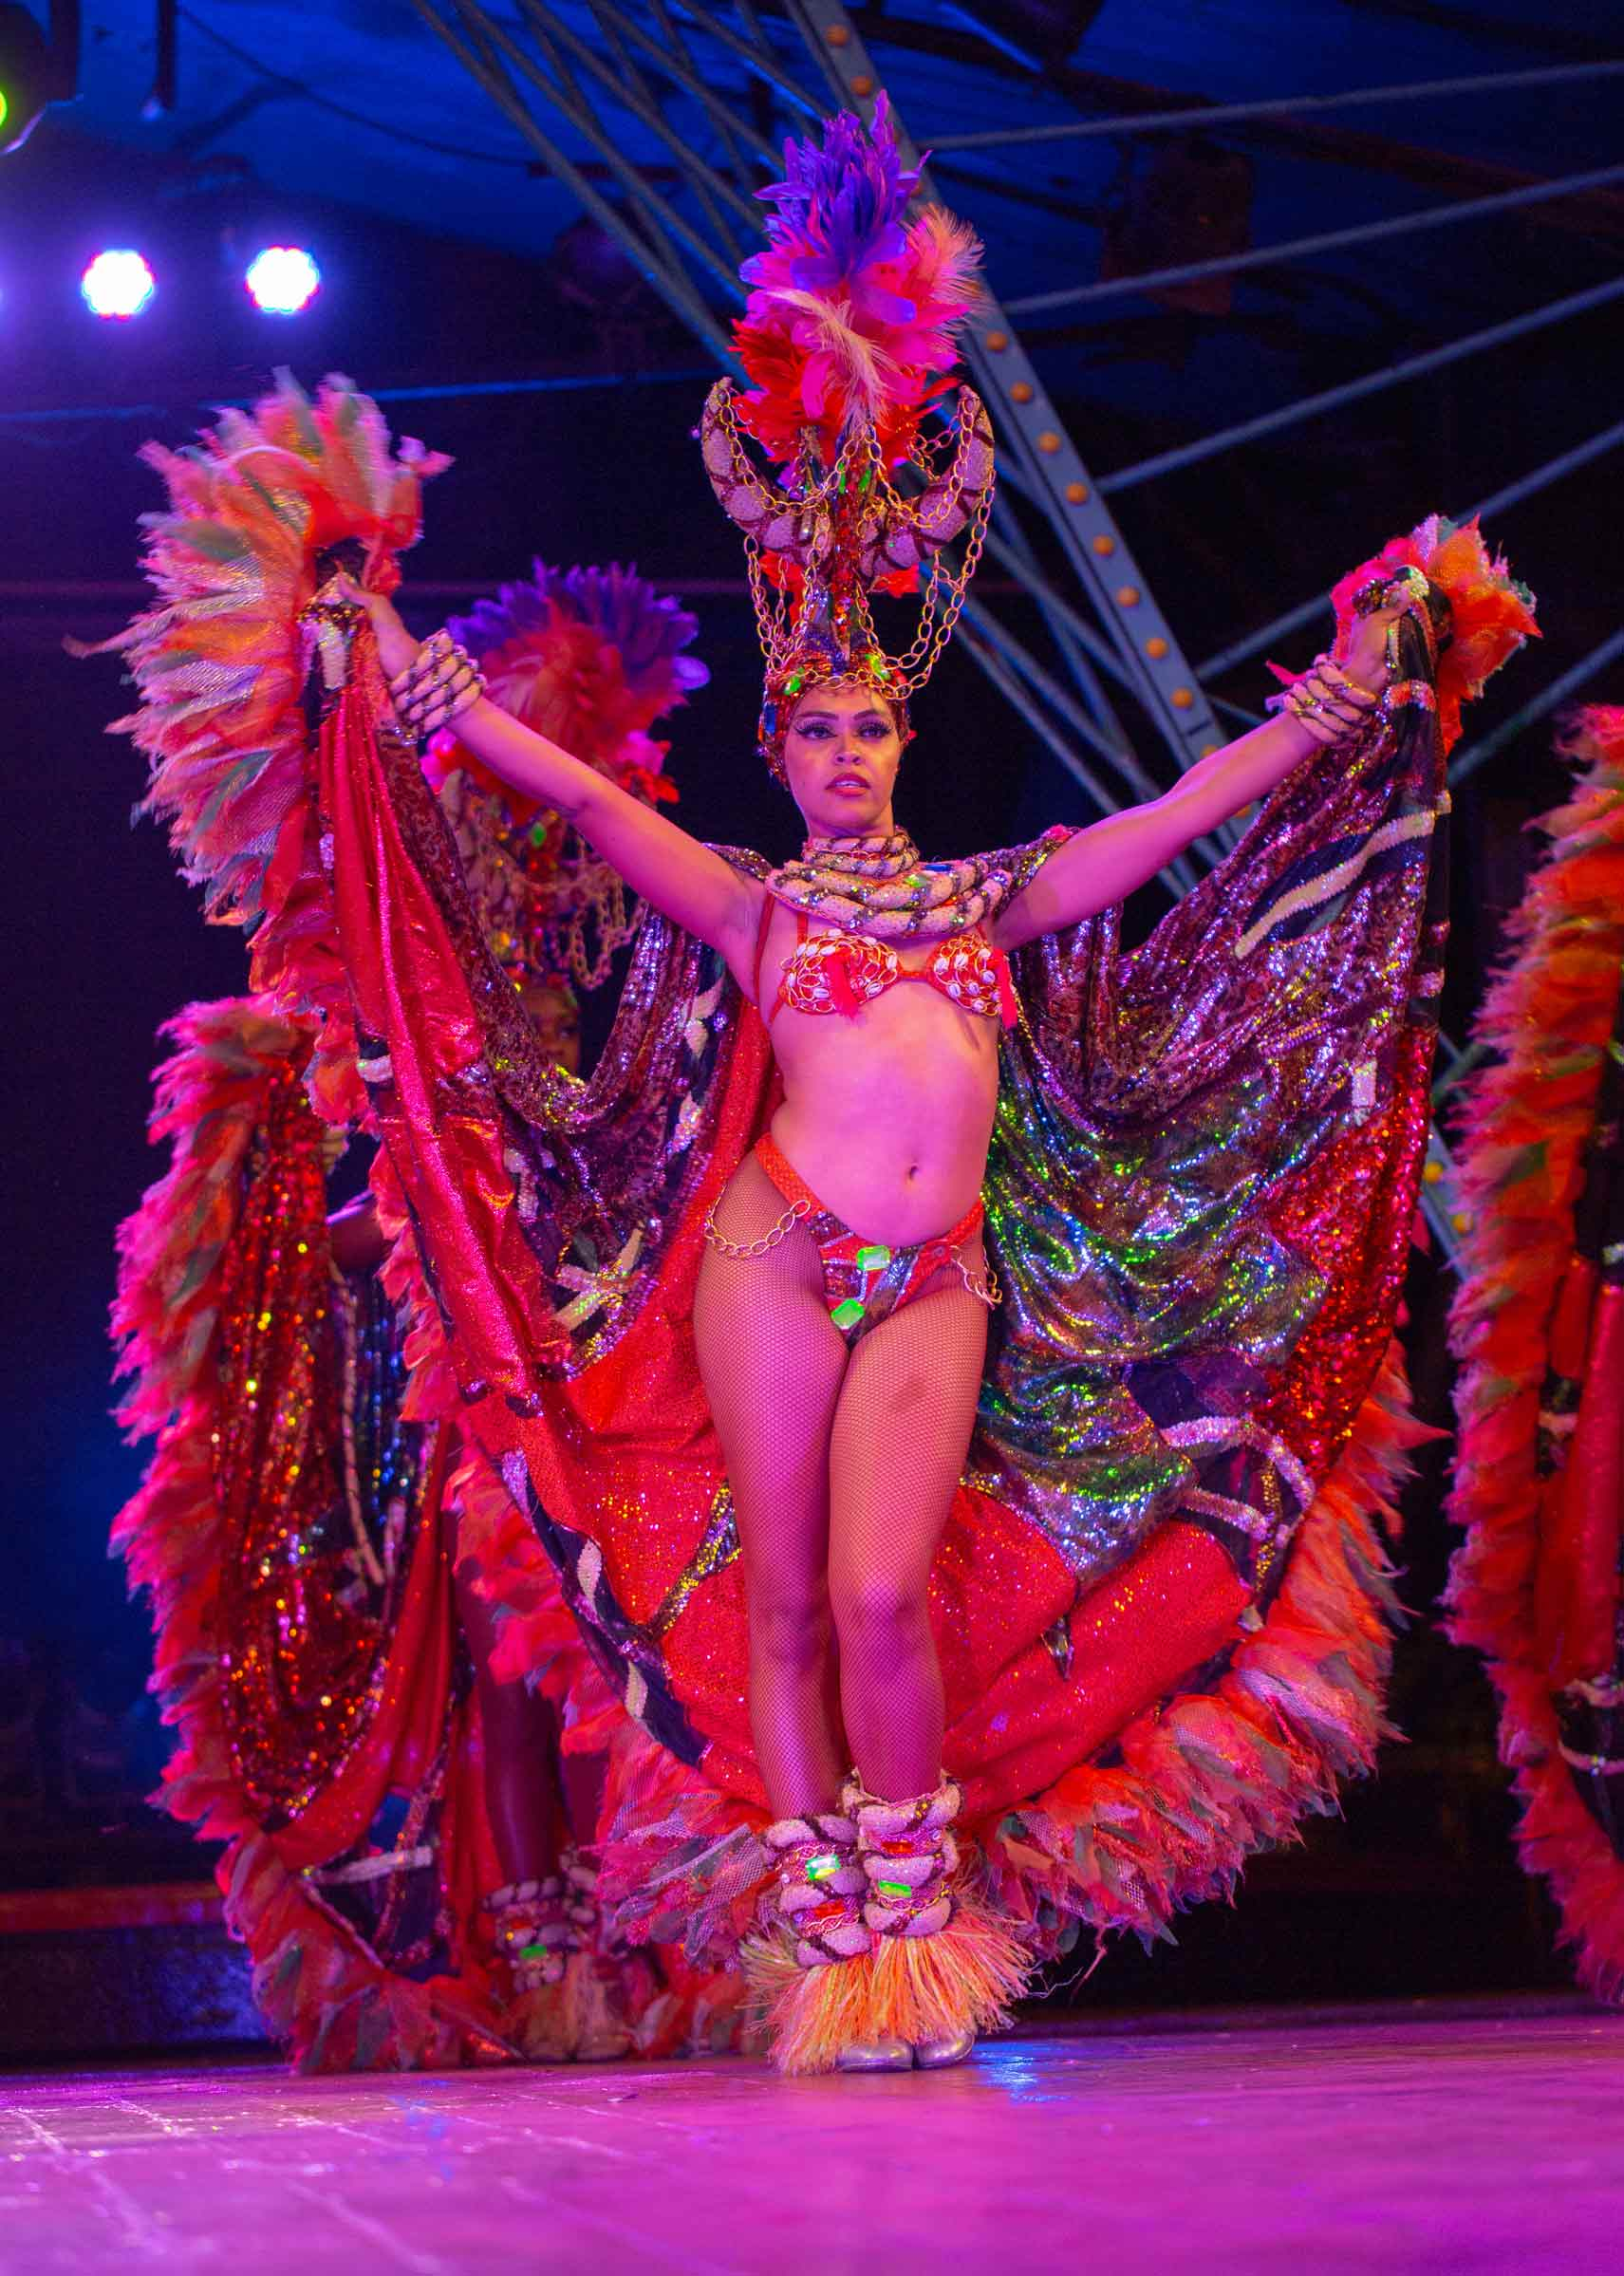 Tropicana Cabaret: a paradise under the stars